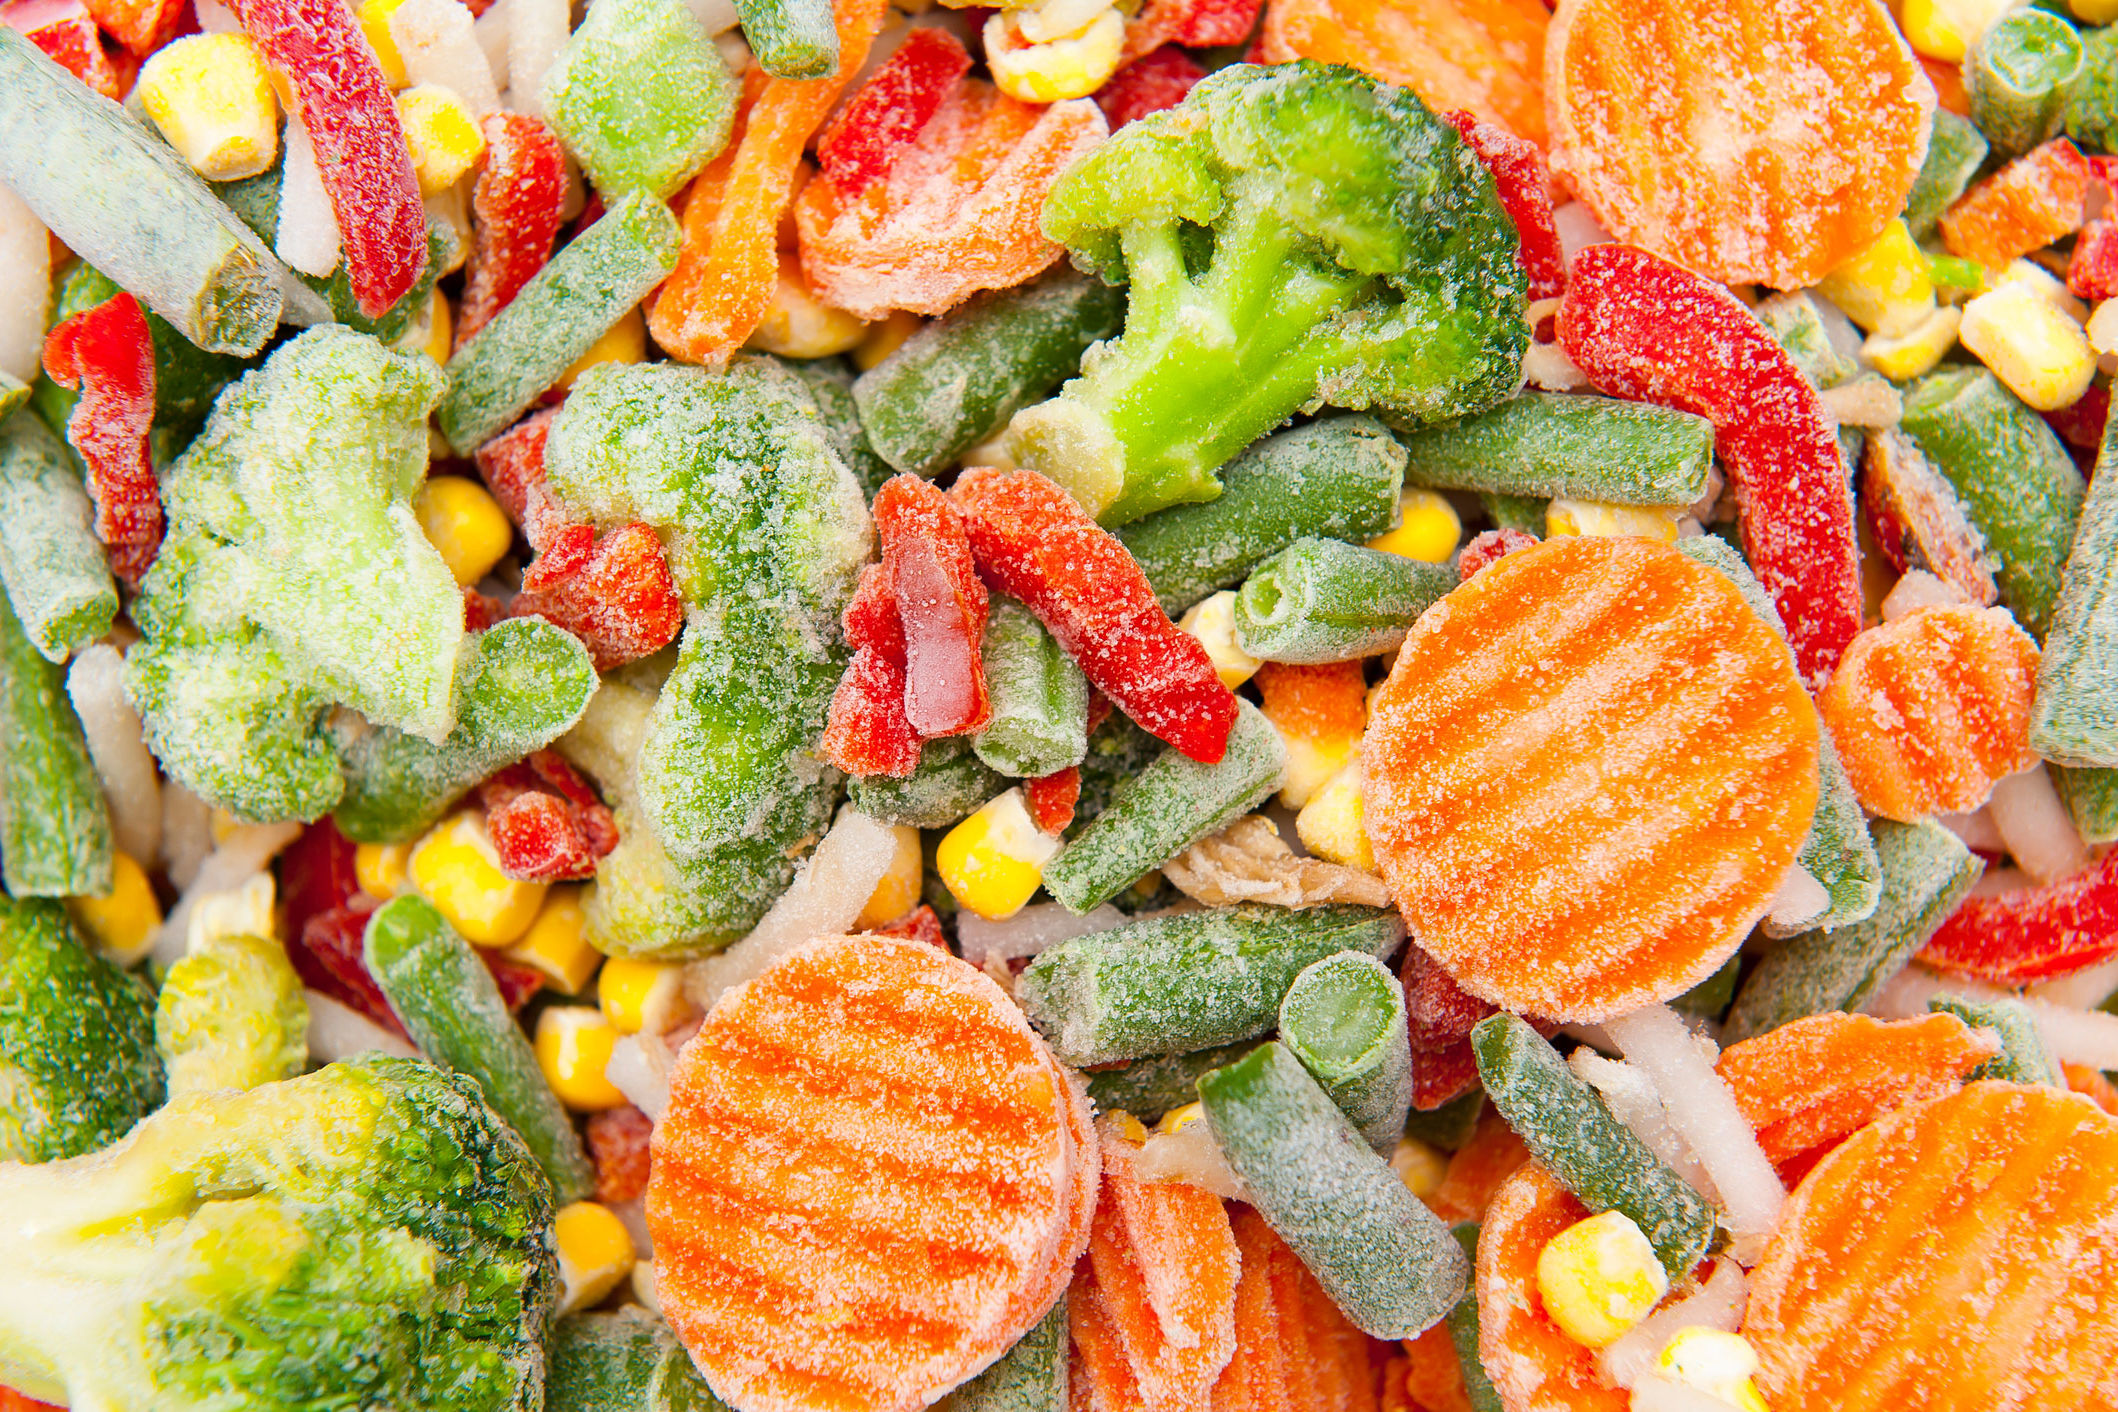 These are the Only Vegetables You Should Buy Frozen